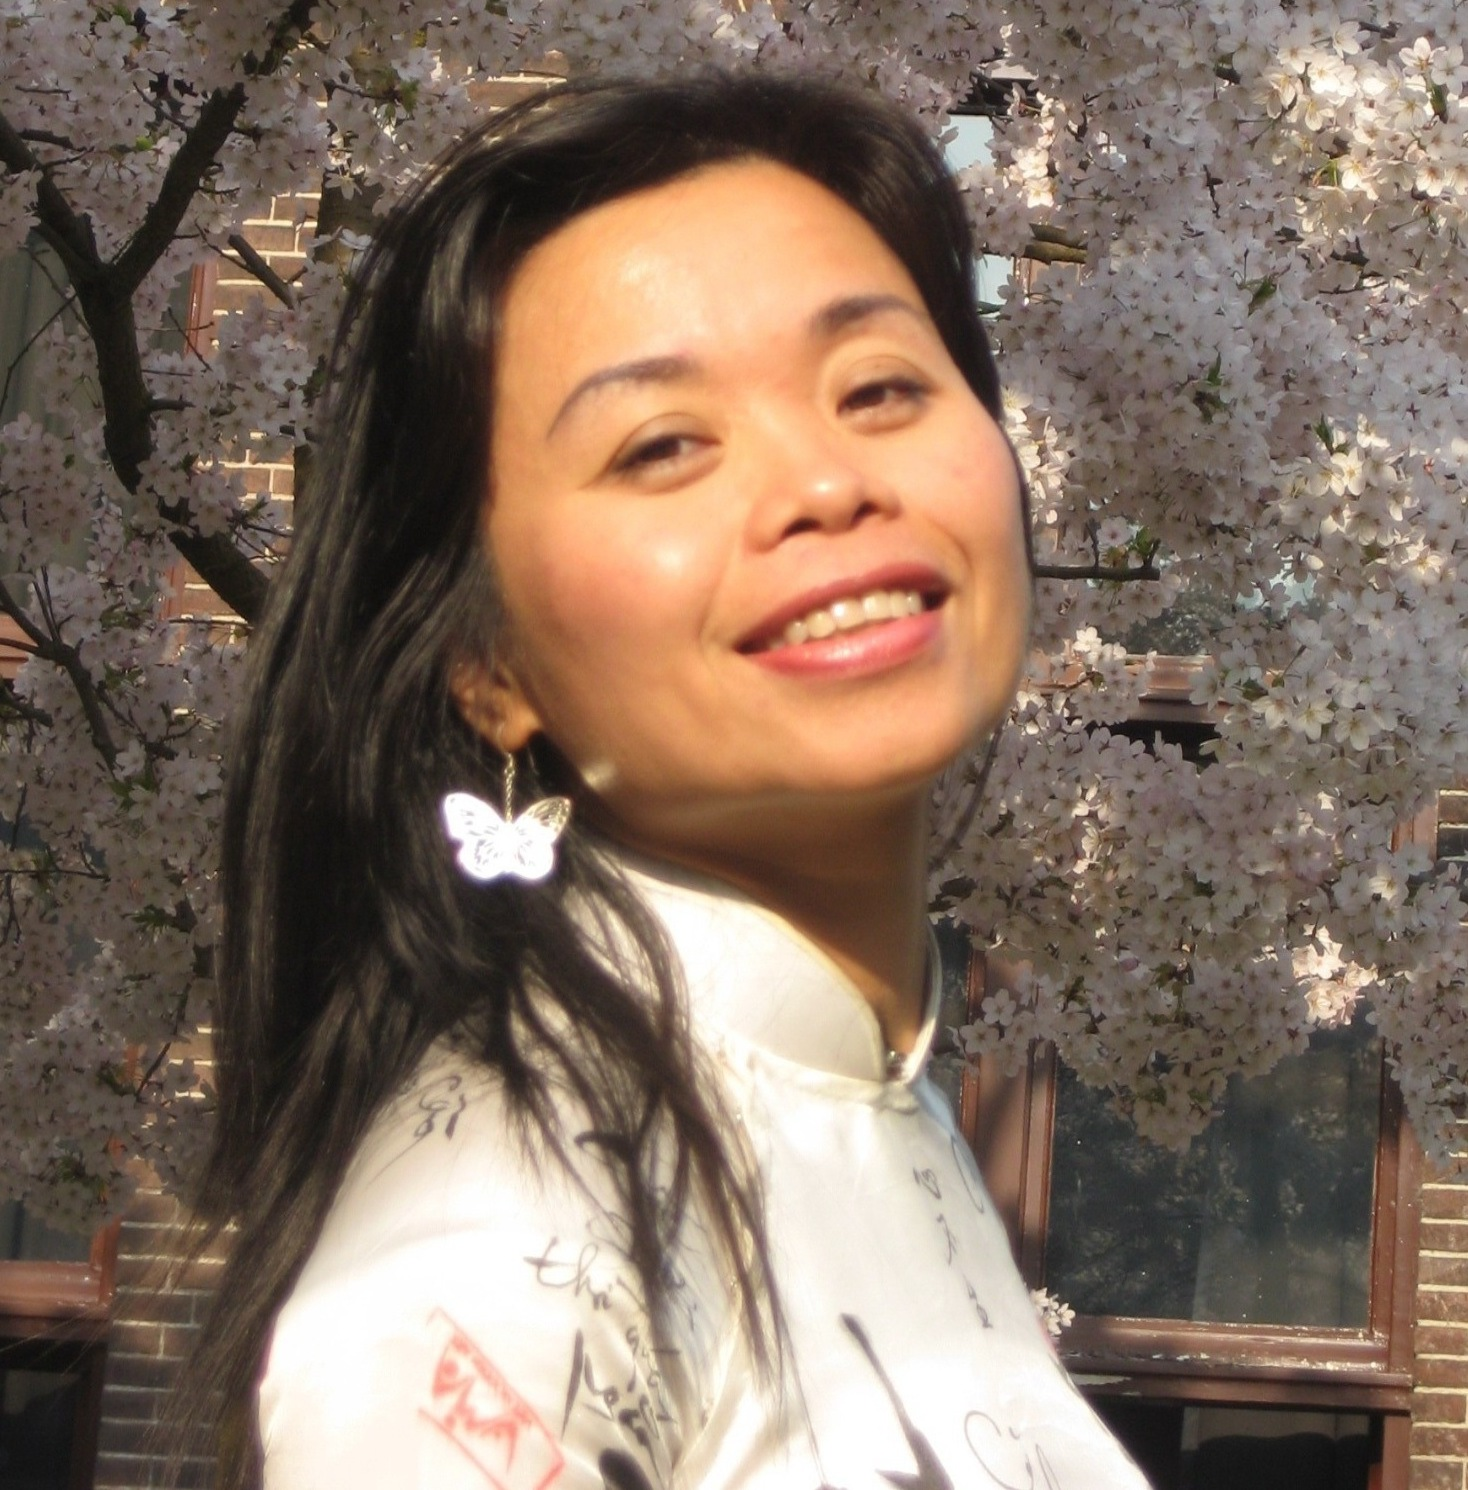 Profile: Nguyen Phan Que Mai, Author Of 'The Mountains Sing' : NPR